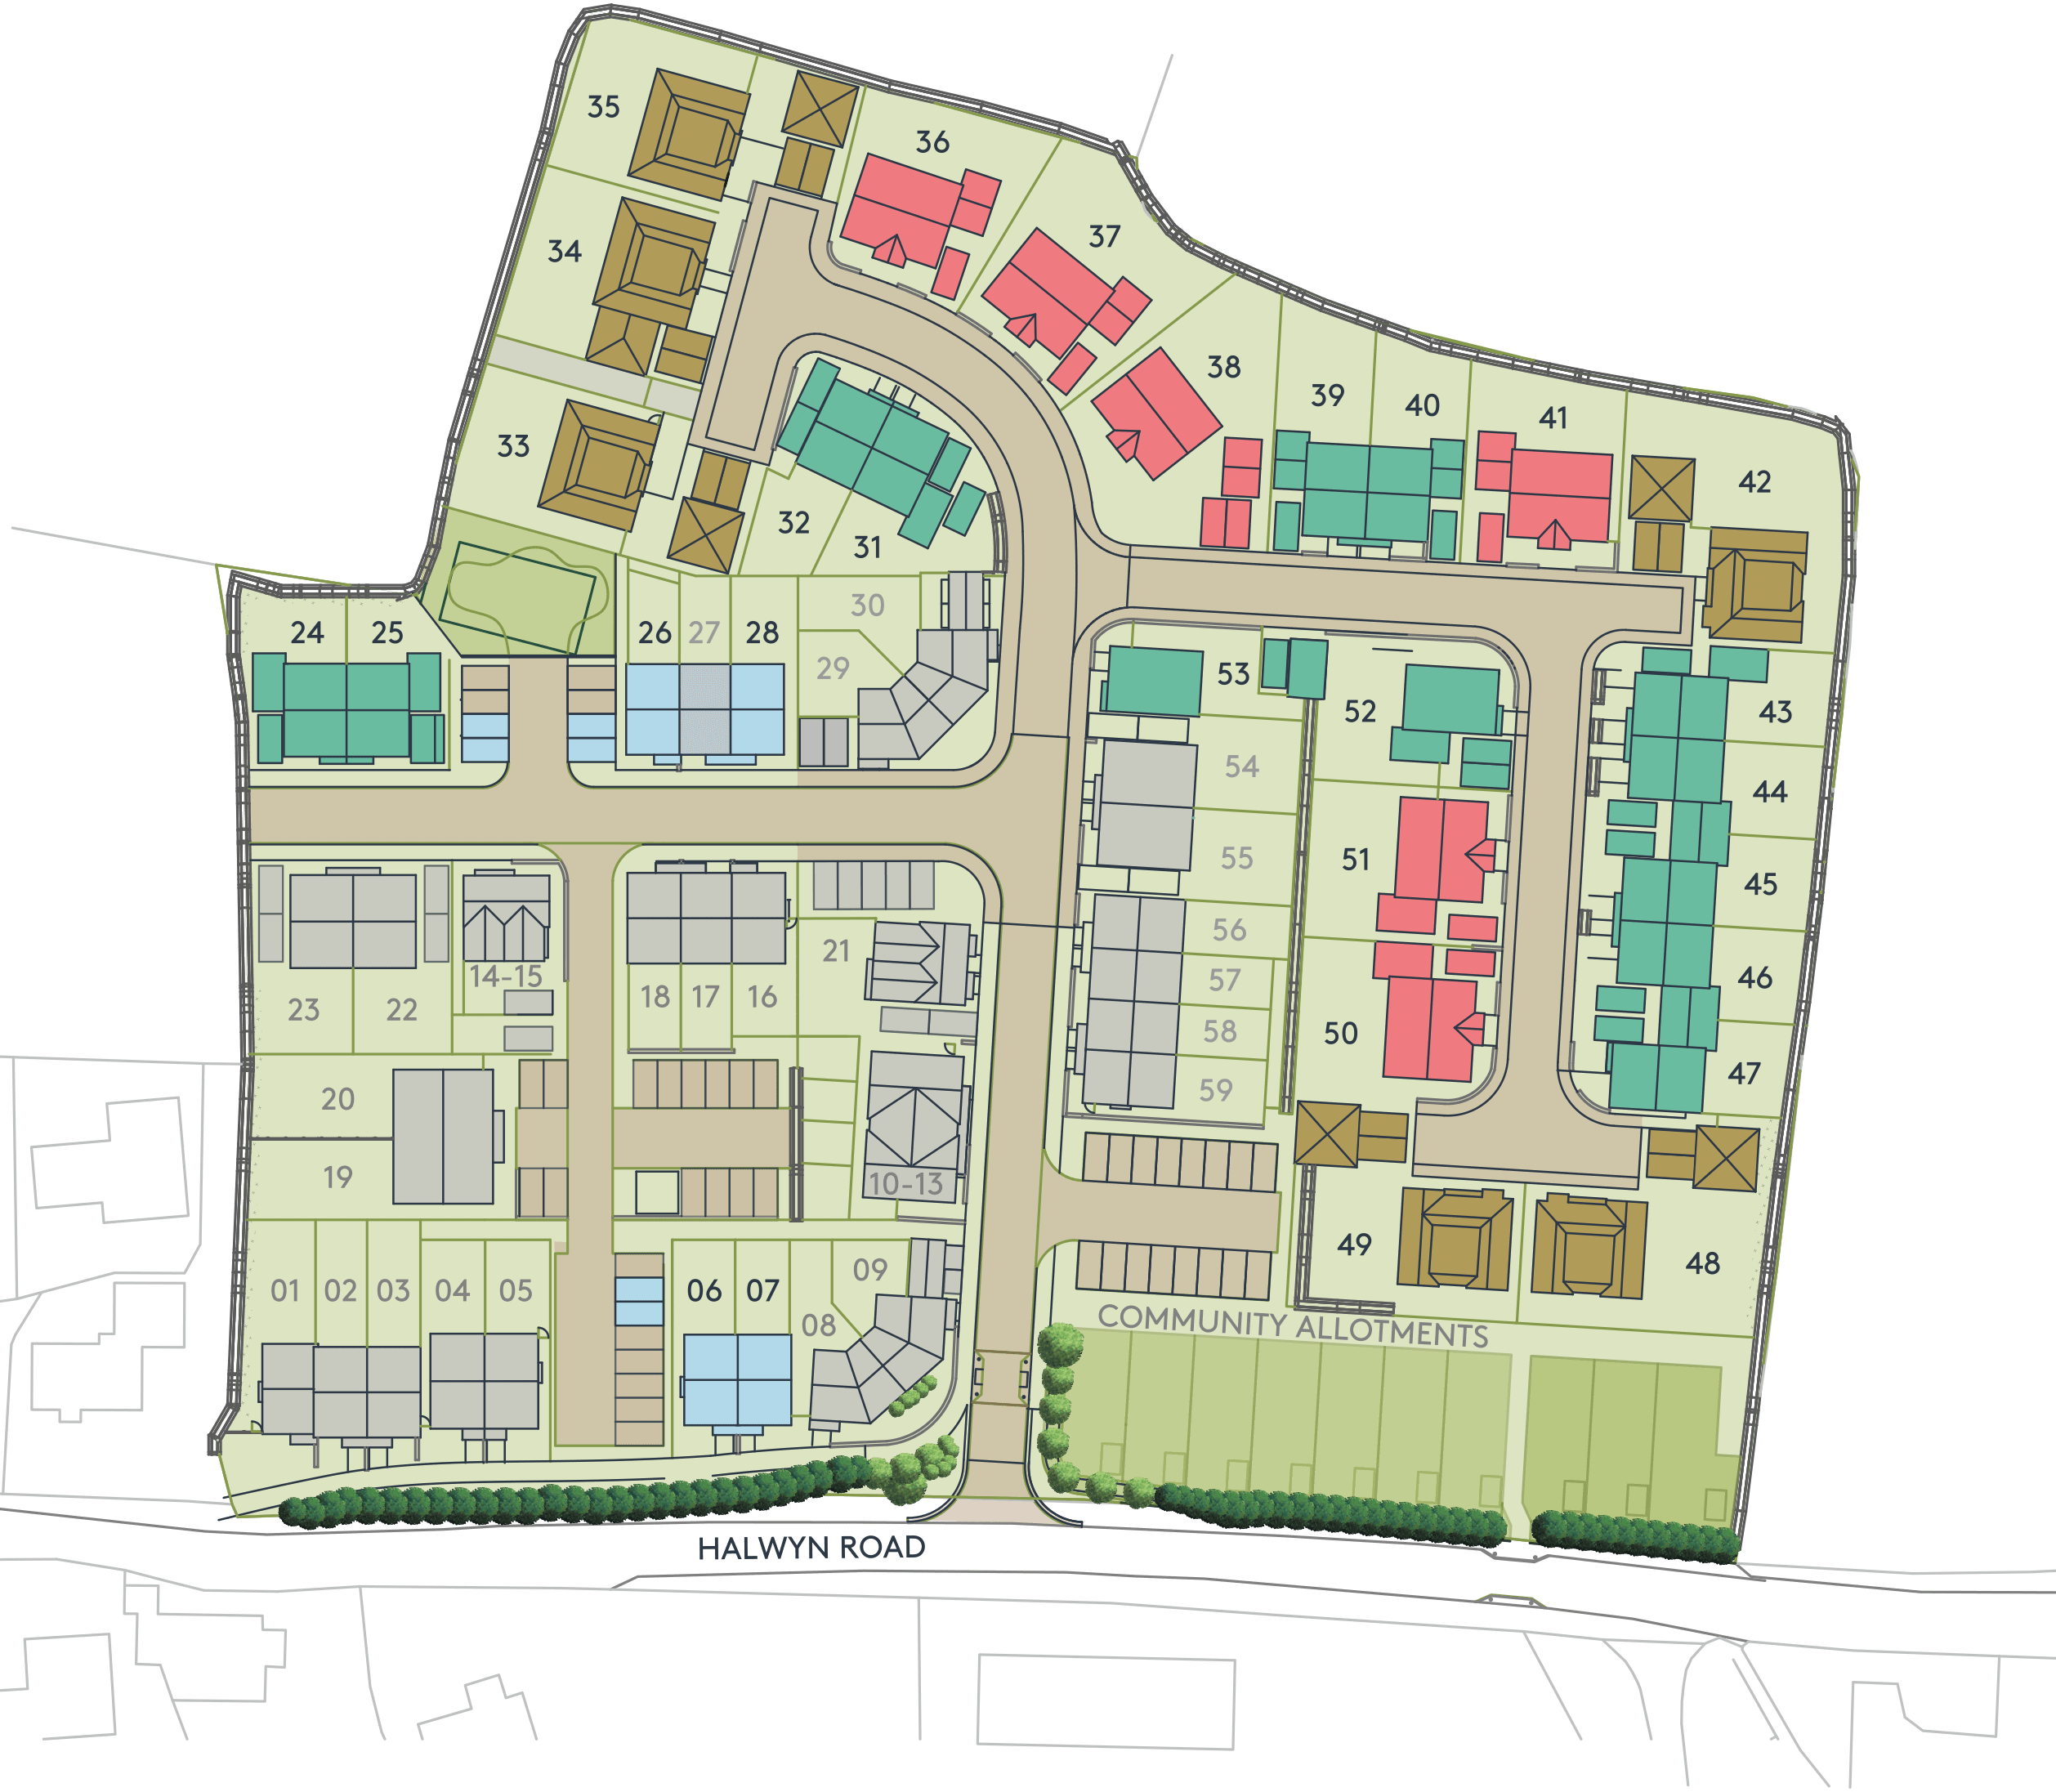 halwyn development plan - Halwyn Meadows